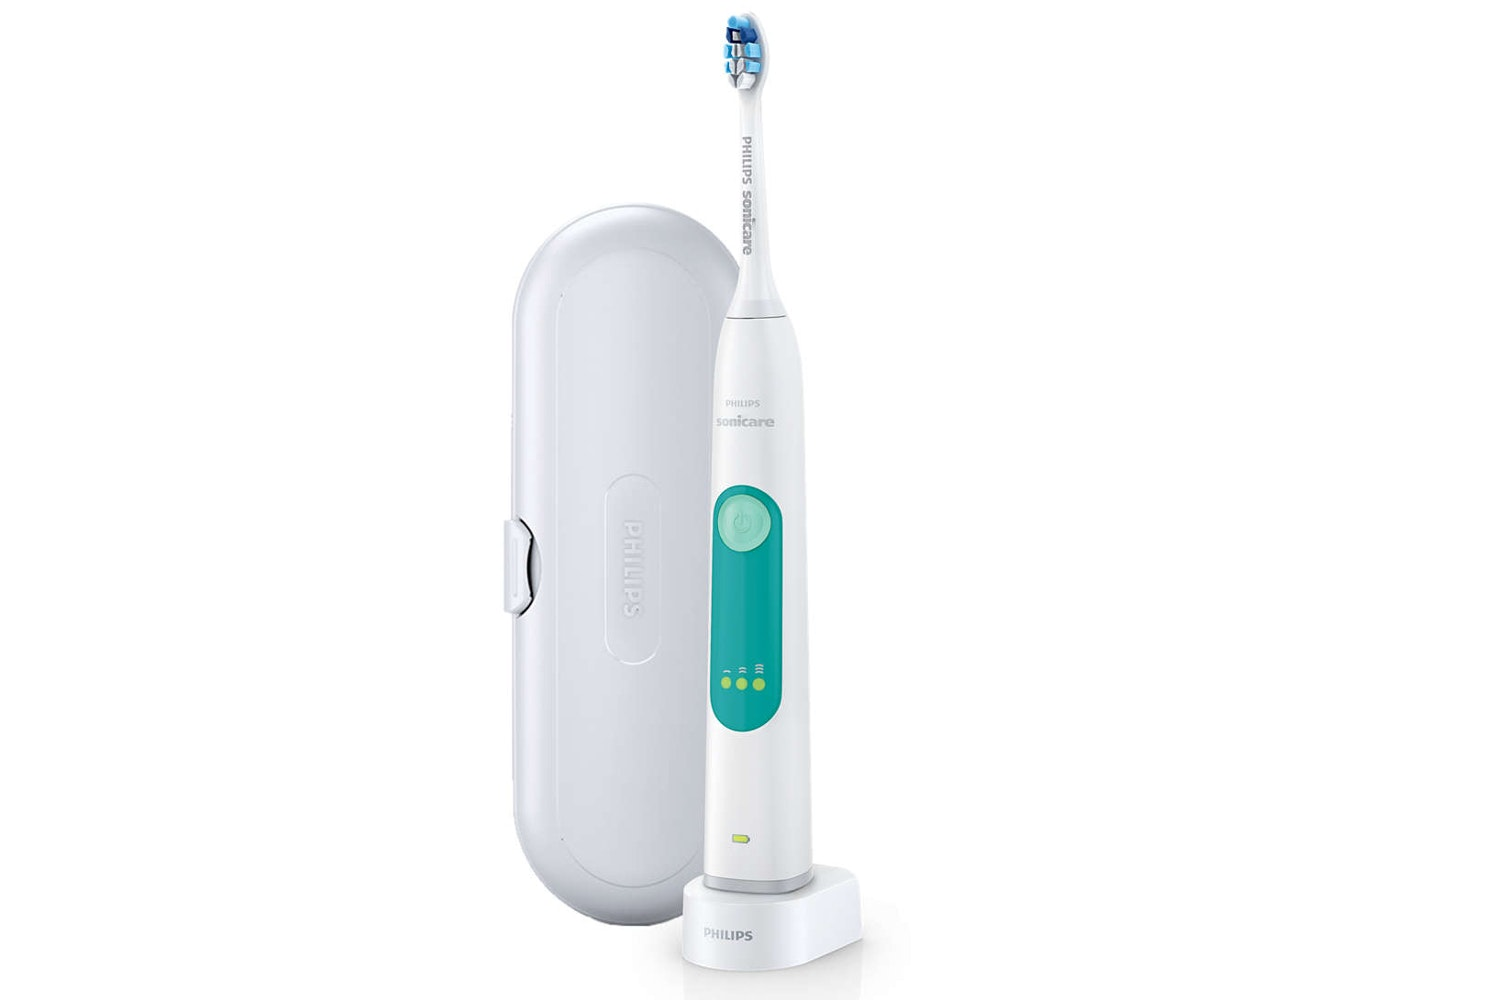 Sonicare 3 Series Toothbrush